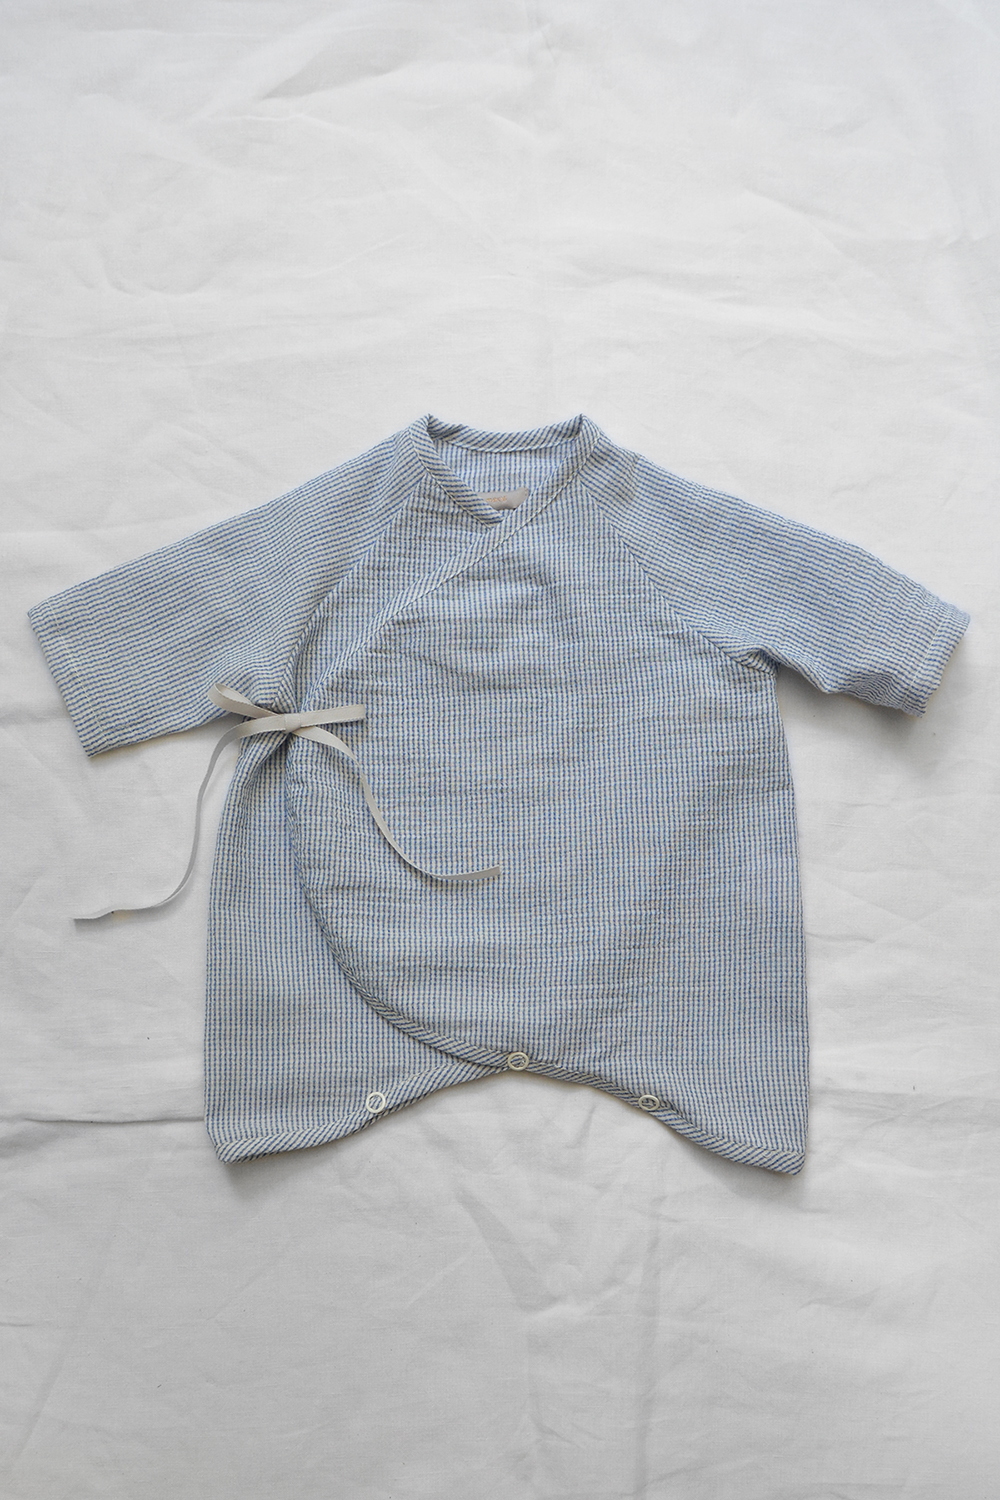 """Light weight and highly breathable baby kimono onesie """"Penn"""" in blue check laid flat on a white background. A GOTS certified baby clothes by Makie."""